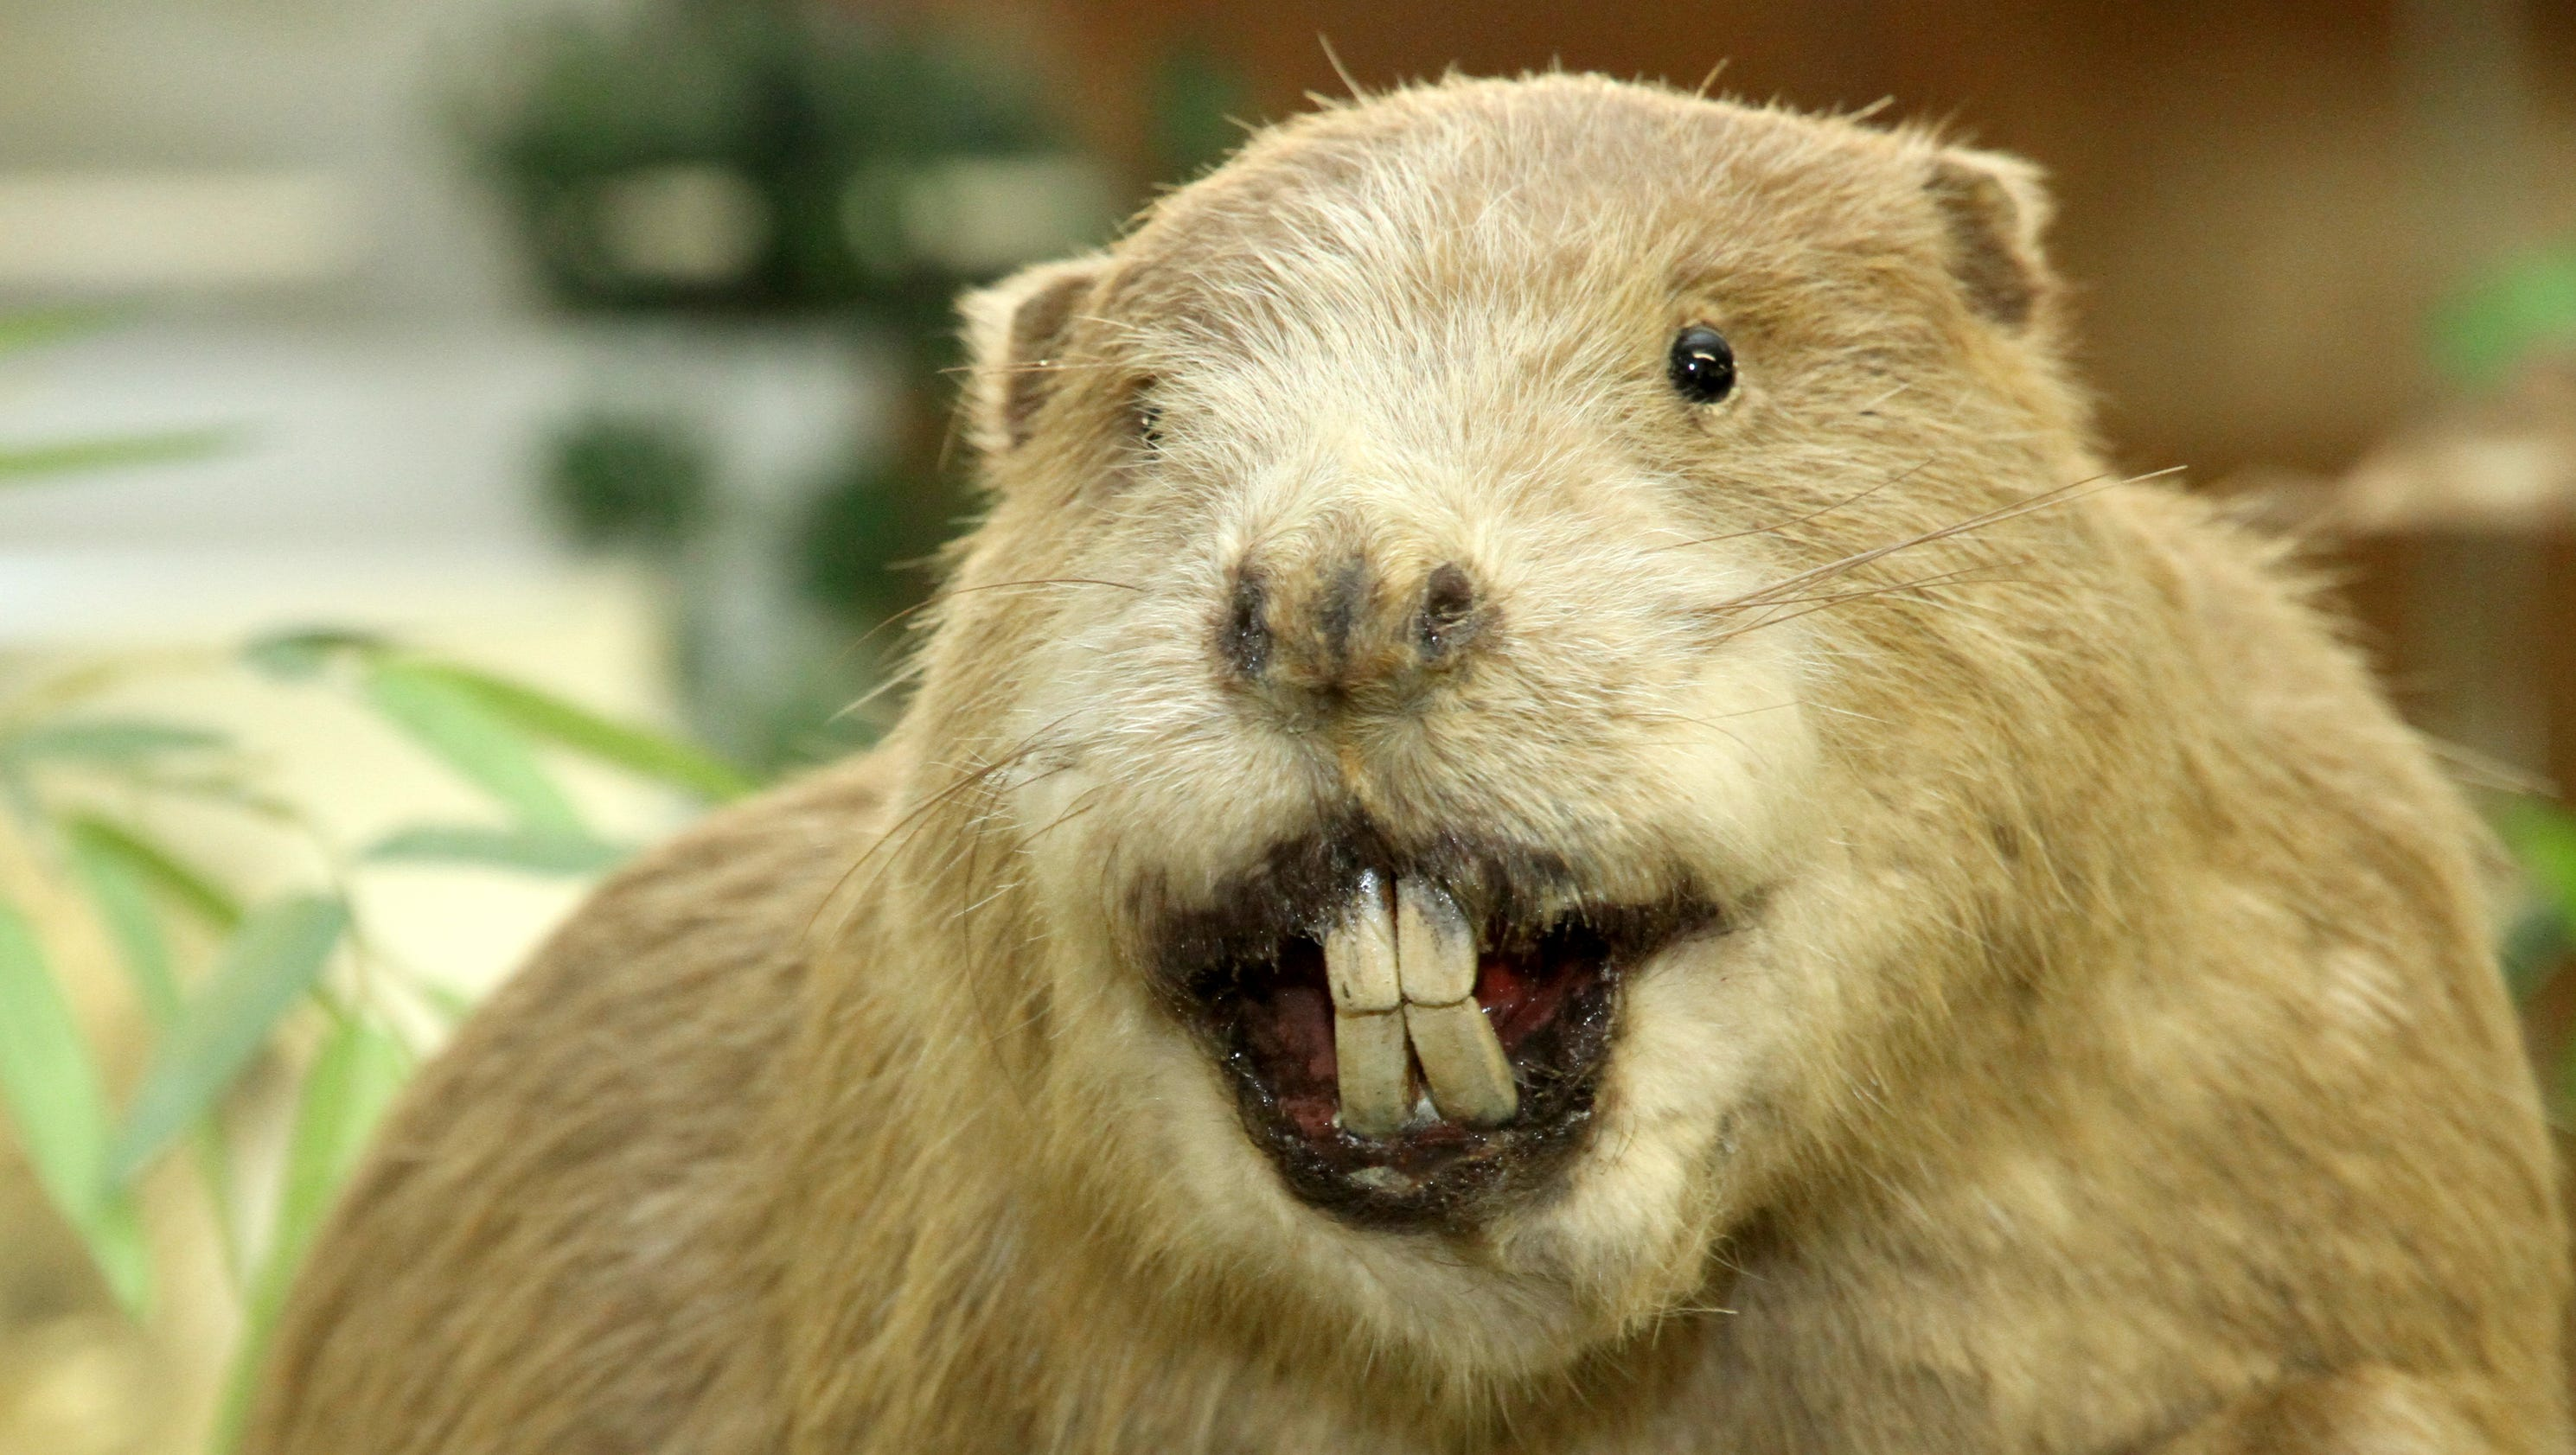 Now In Stock Canada >> Beaver that attacked paddle boarder in N.C. was rabid